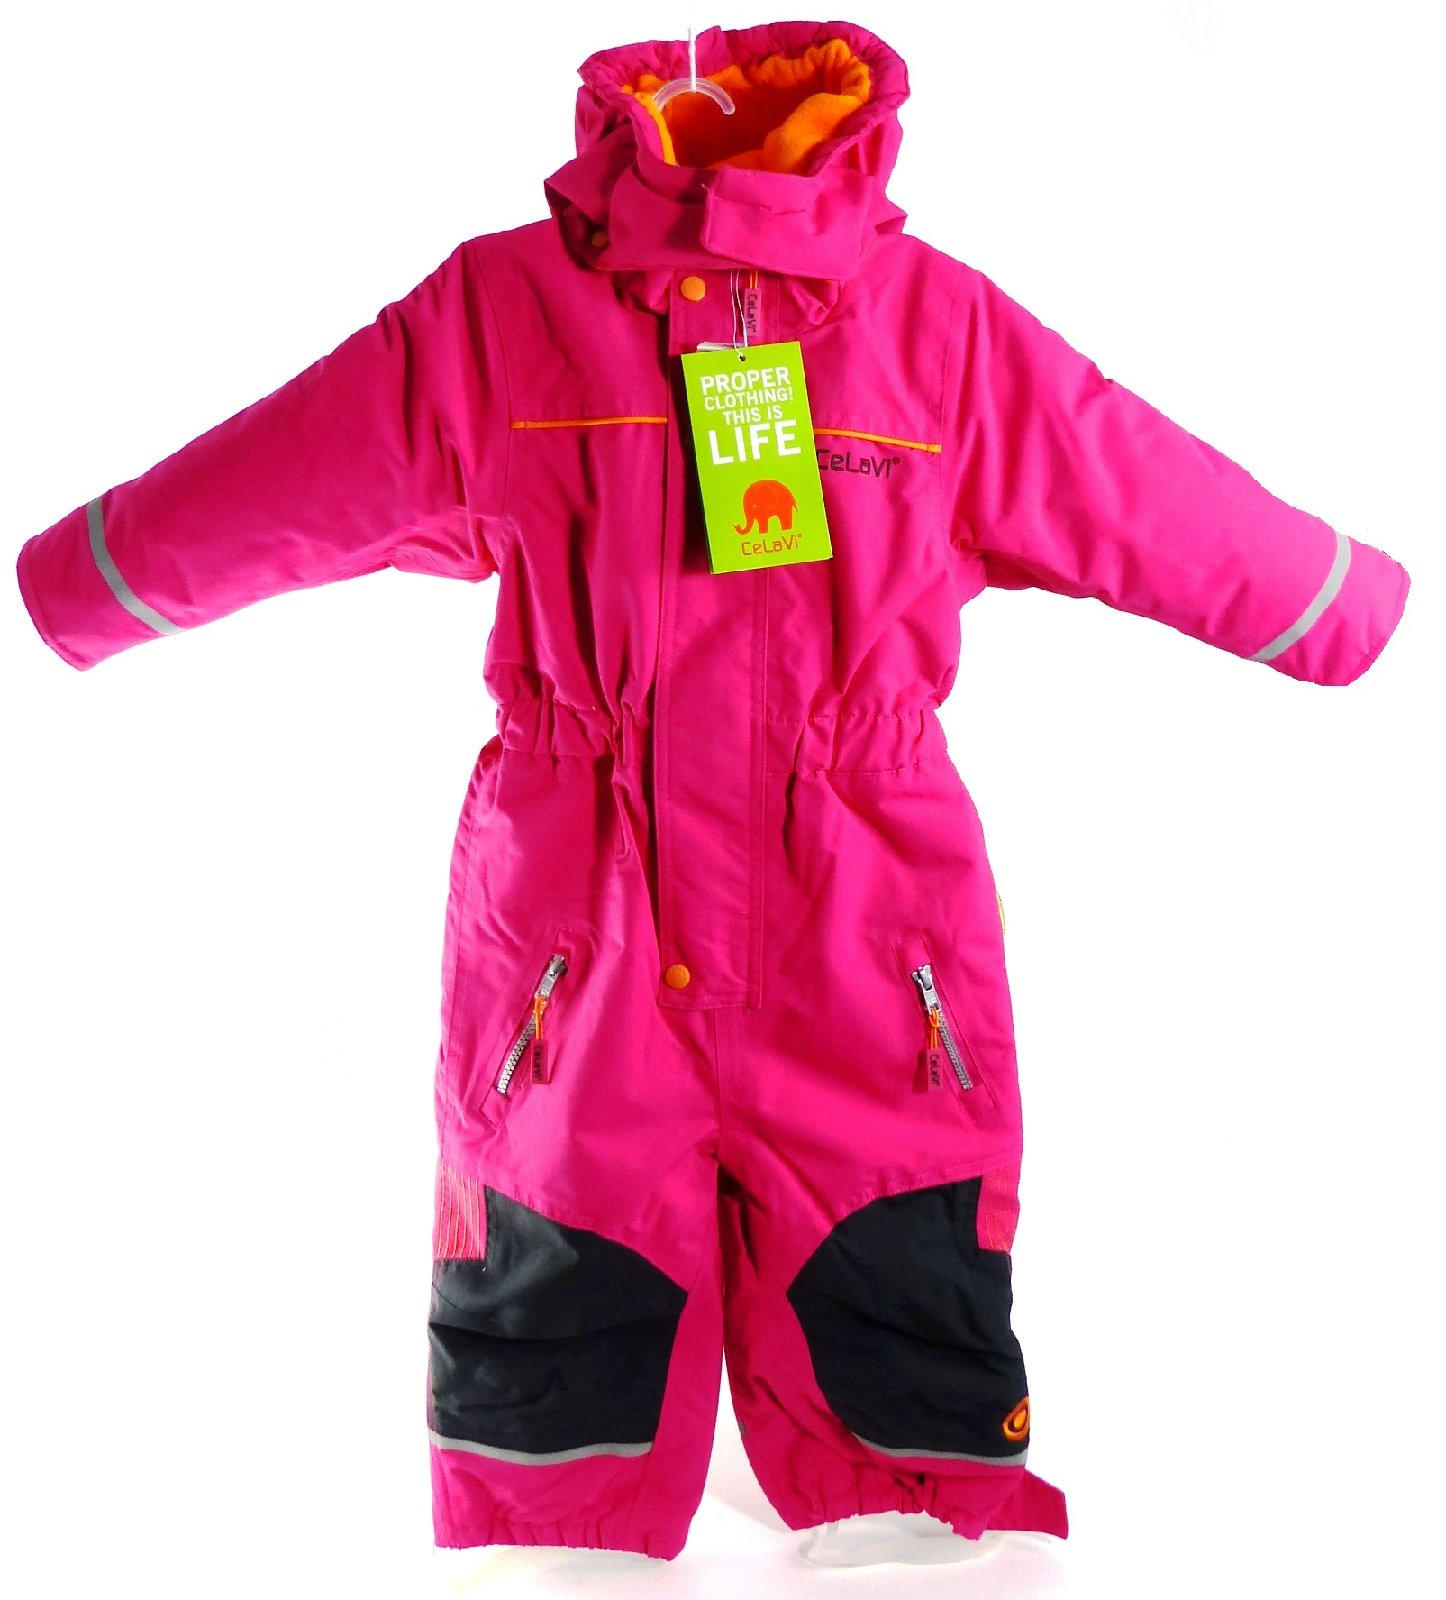 celavi schneeanzug skioverall anzug overall kids gr 92 m dchen winter pink 1124 ebay. Black Bedroom Furniture Sets. Home Design Ideas